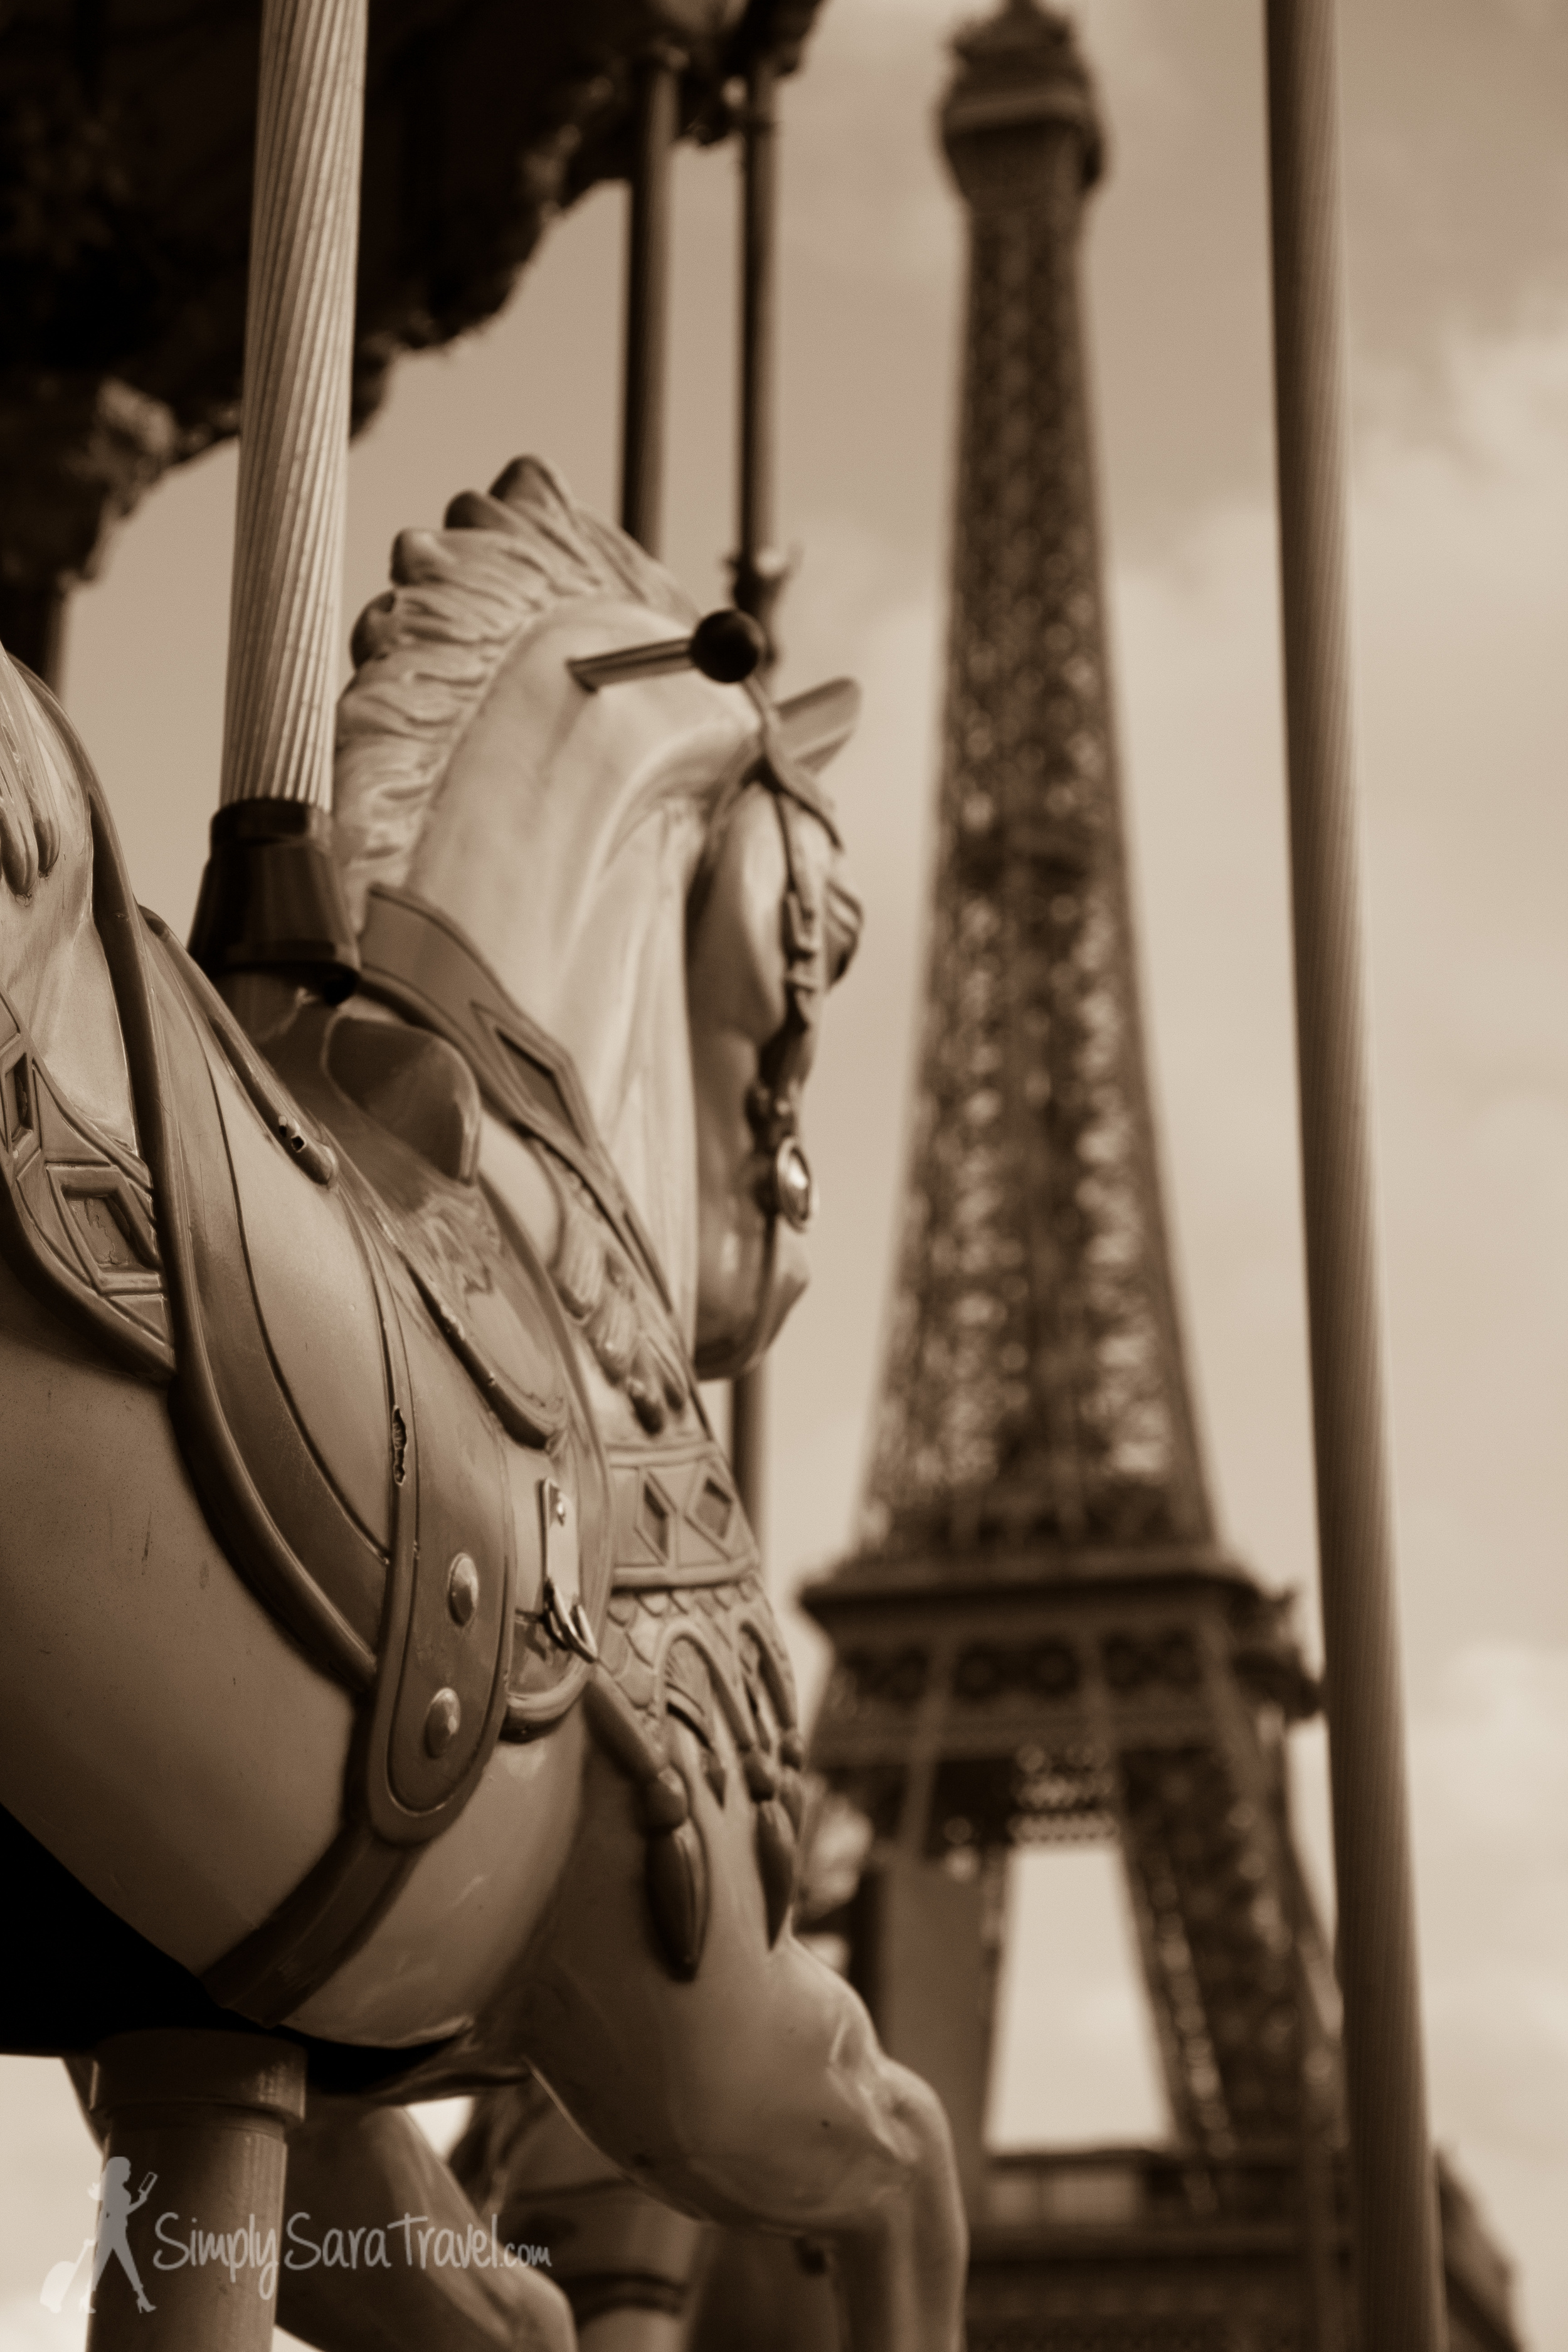 Carousel with Eiffel Tower in Paris, France